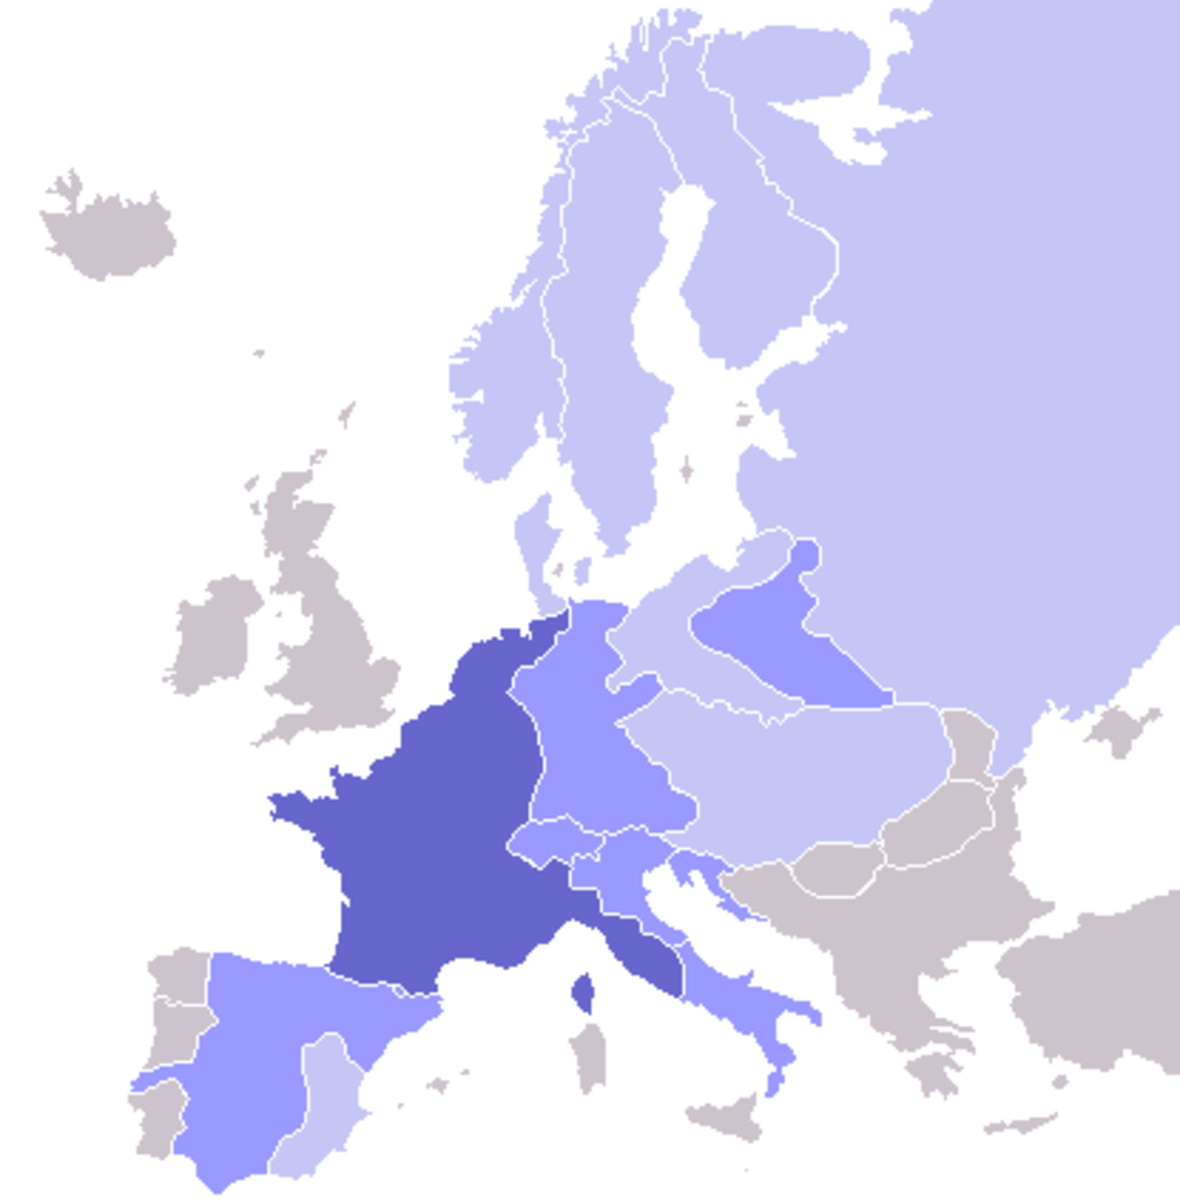 Colors indicate (from dark blue to light blue) : Dark blue: French Empire Light blue: French satellite states and occupied zones Blue-grey: Countries forced by France into applying the Continental System.